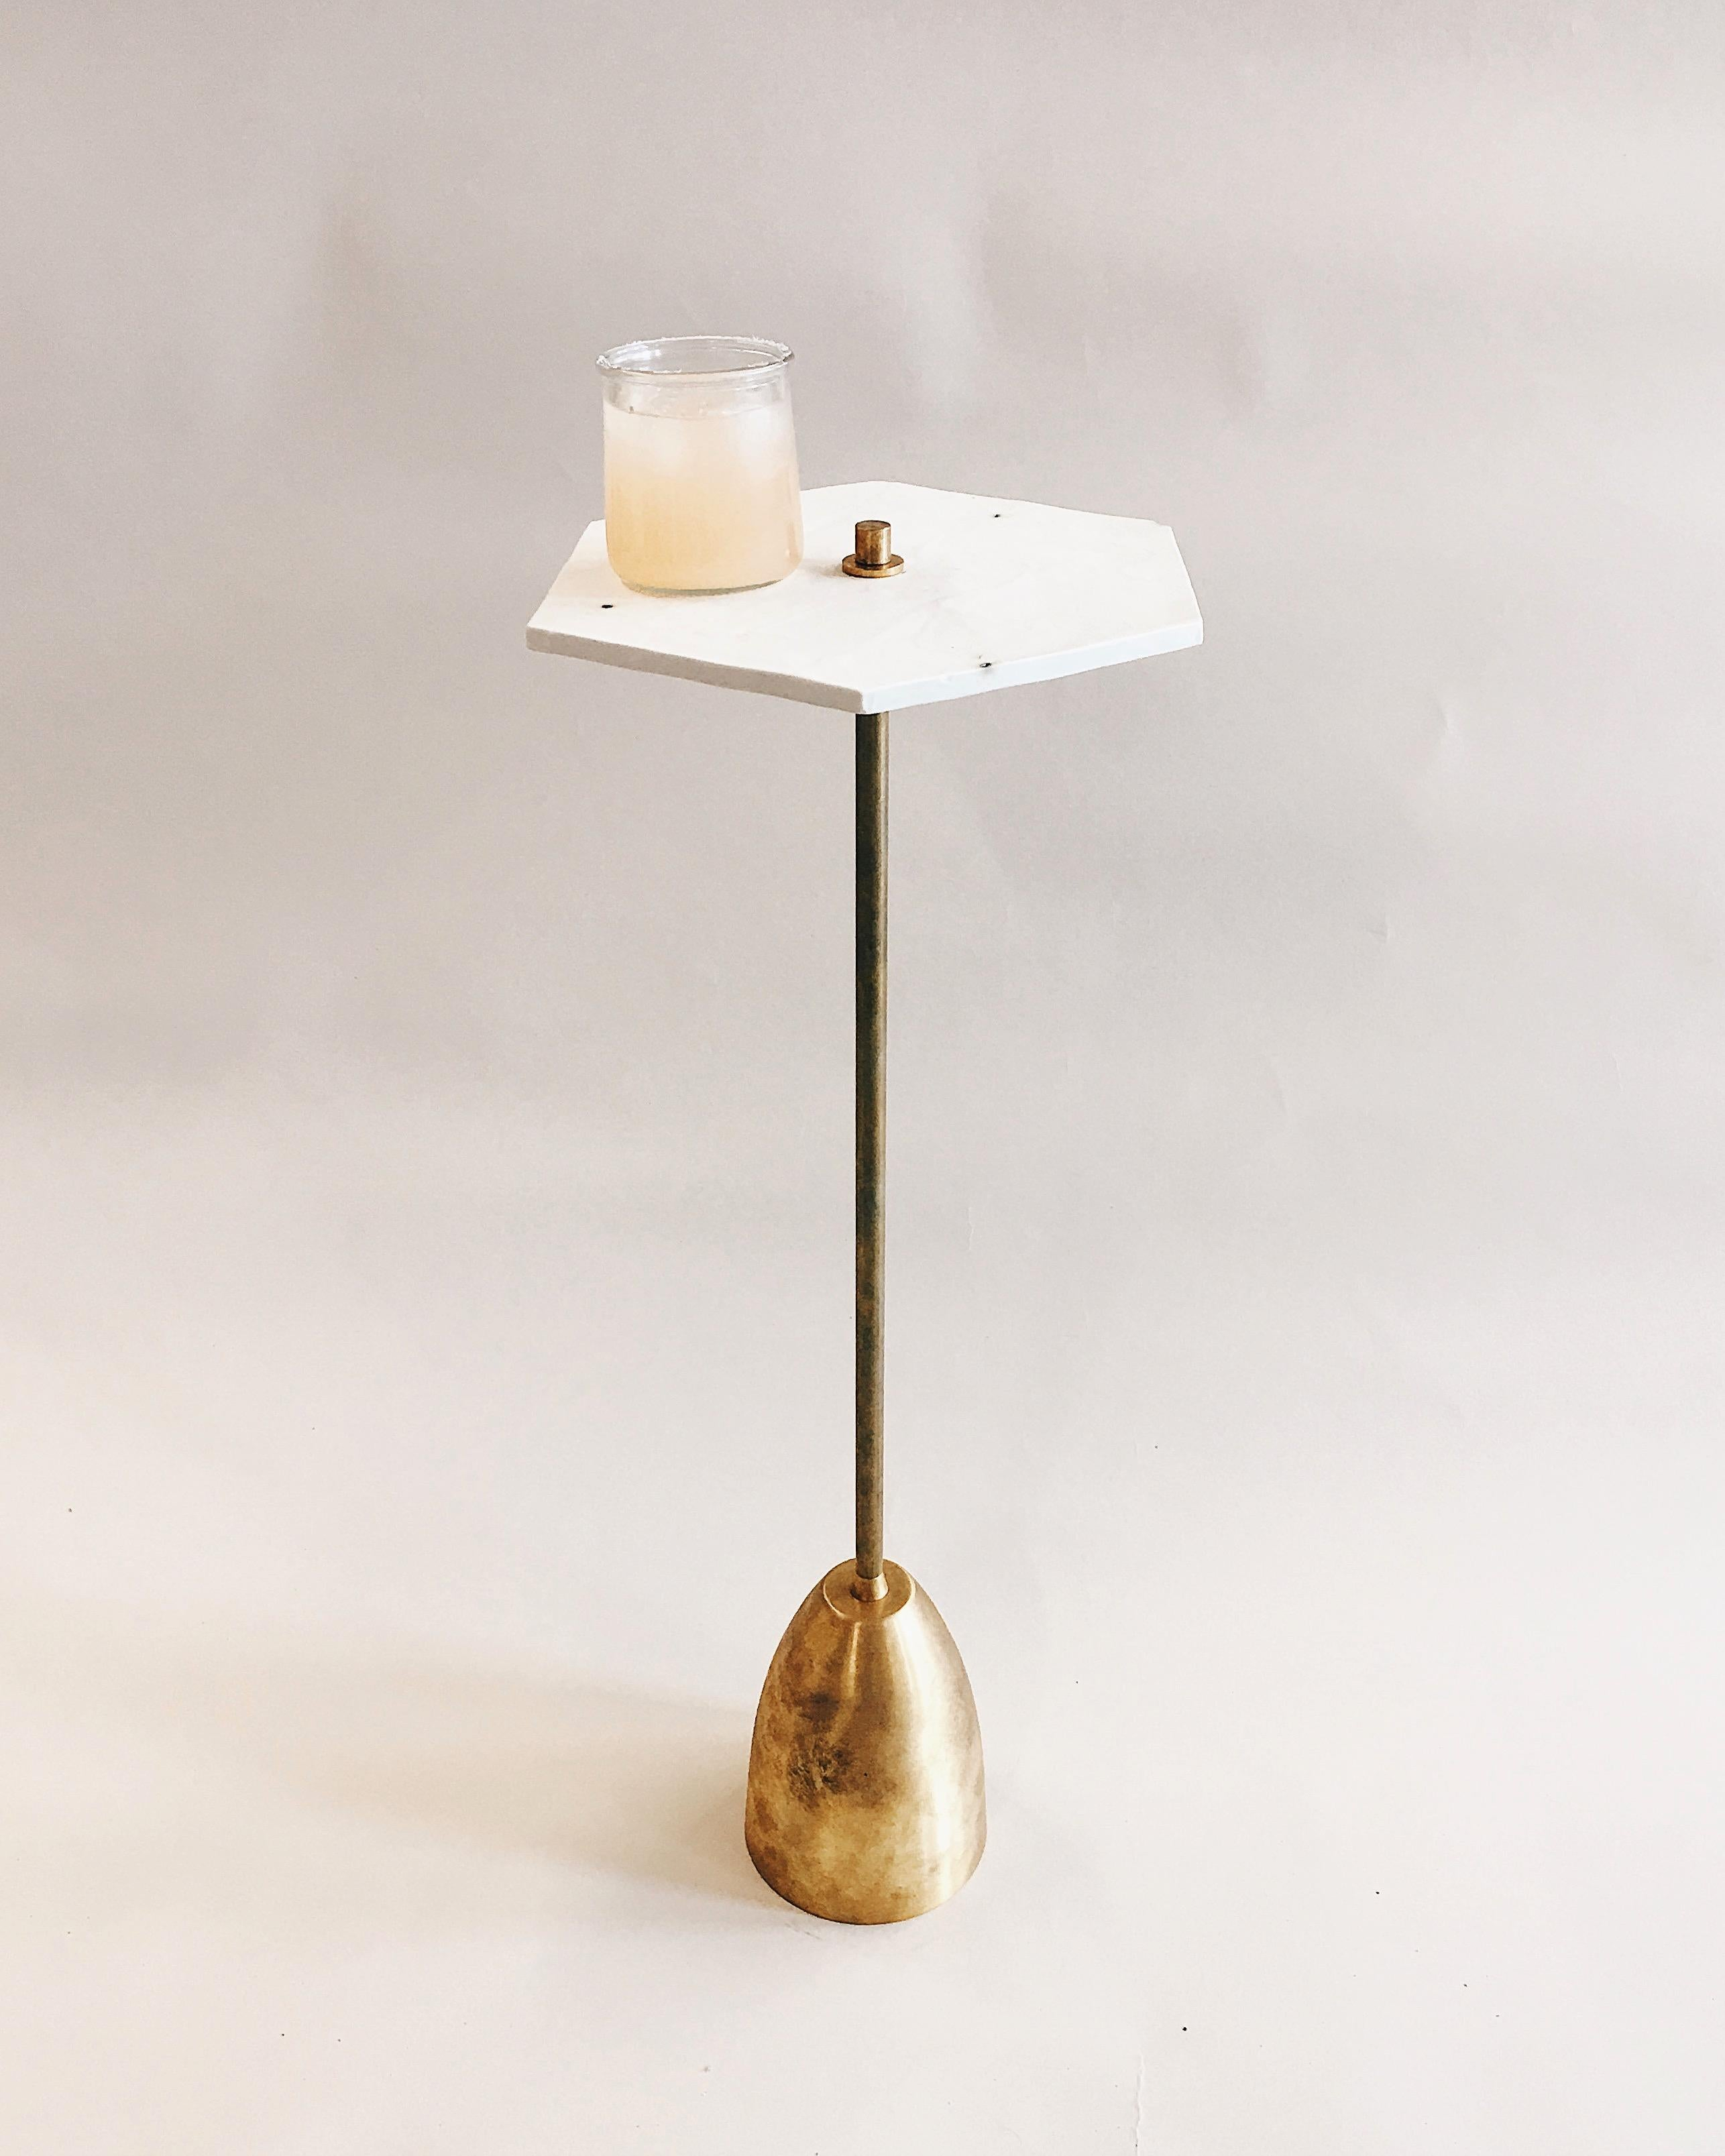 Picture of: Relic Porcelain And Brass Small Drinks Table For Sale At 1stdibs